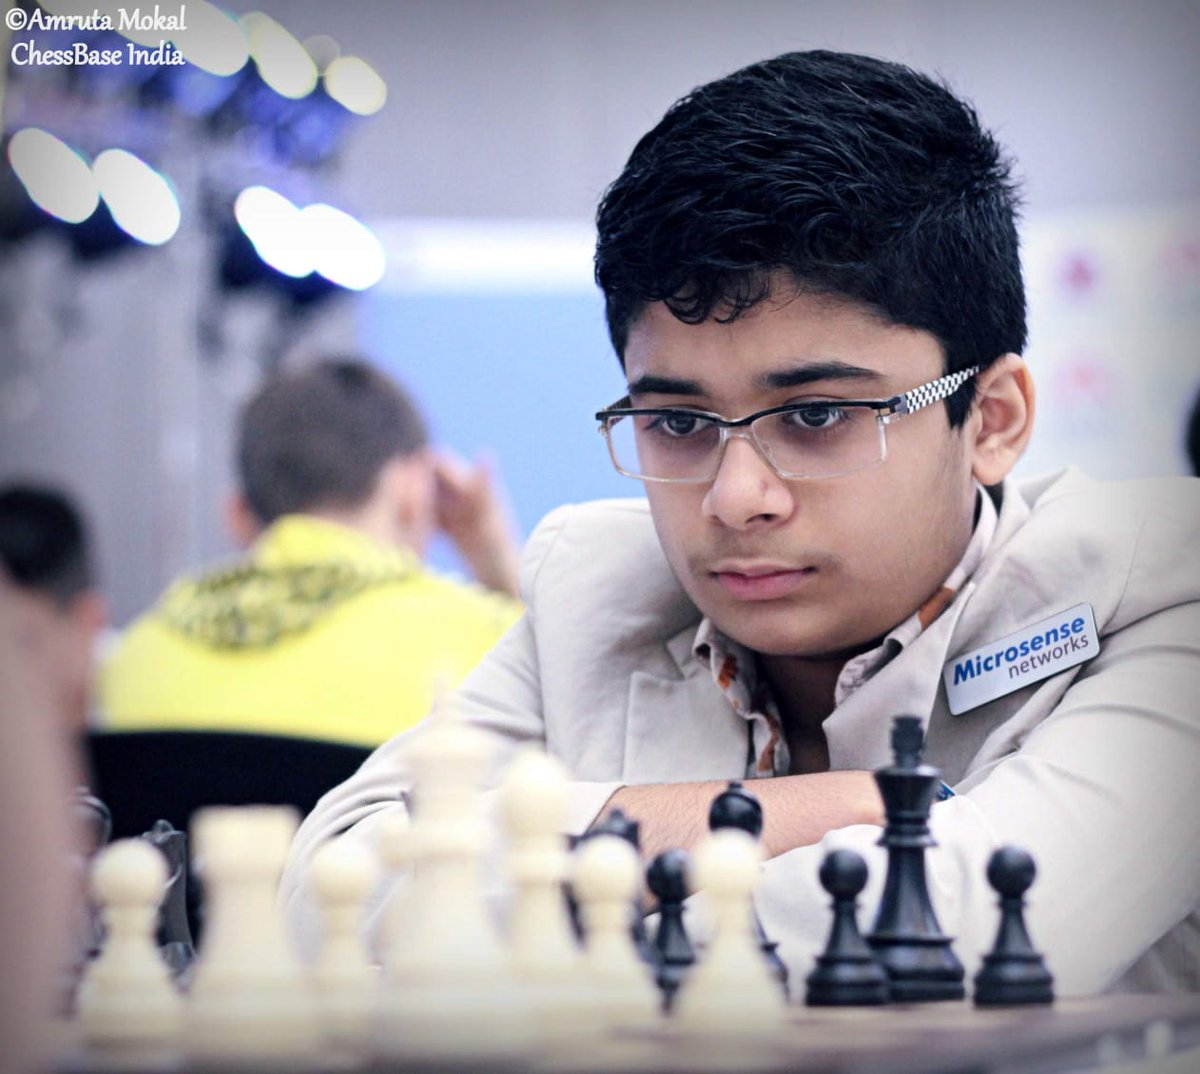 Leon Mendonca becomes India's 67th GM at the age of 14 years 9 months and 17 days! In the last 9 months of lockdown, Leon has played 16 events in Europe and has reached a live rating of 2544, also scoring his 3 GM norms!  Read his inspiring story: